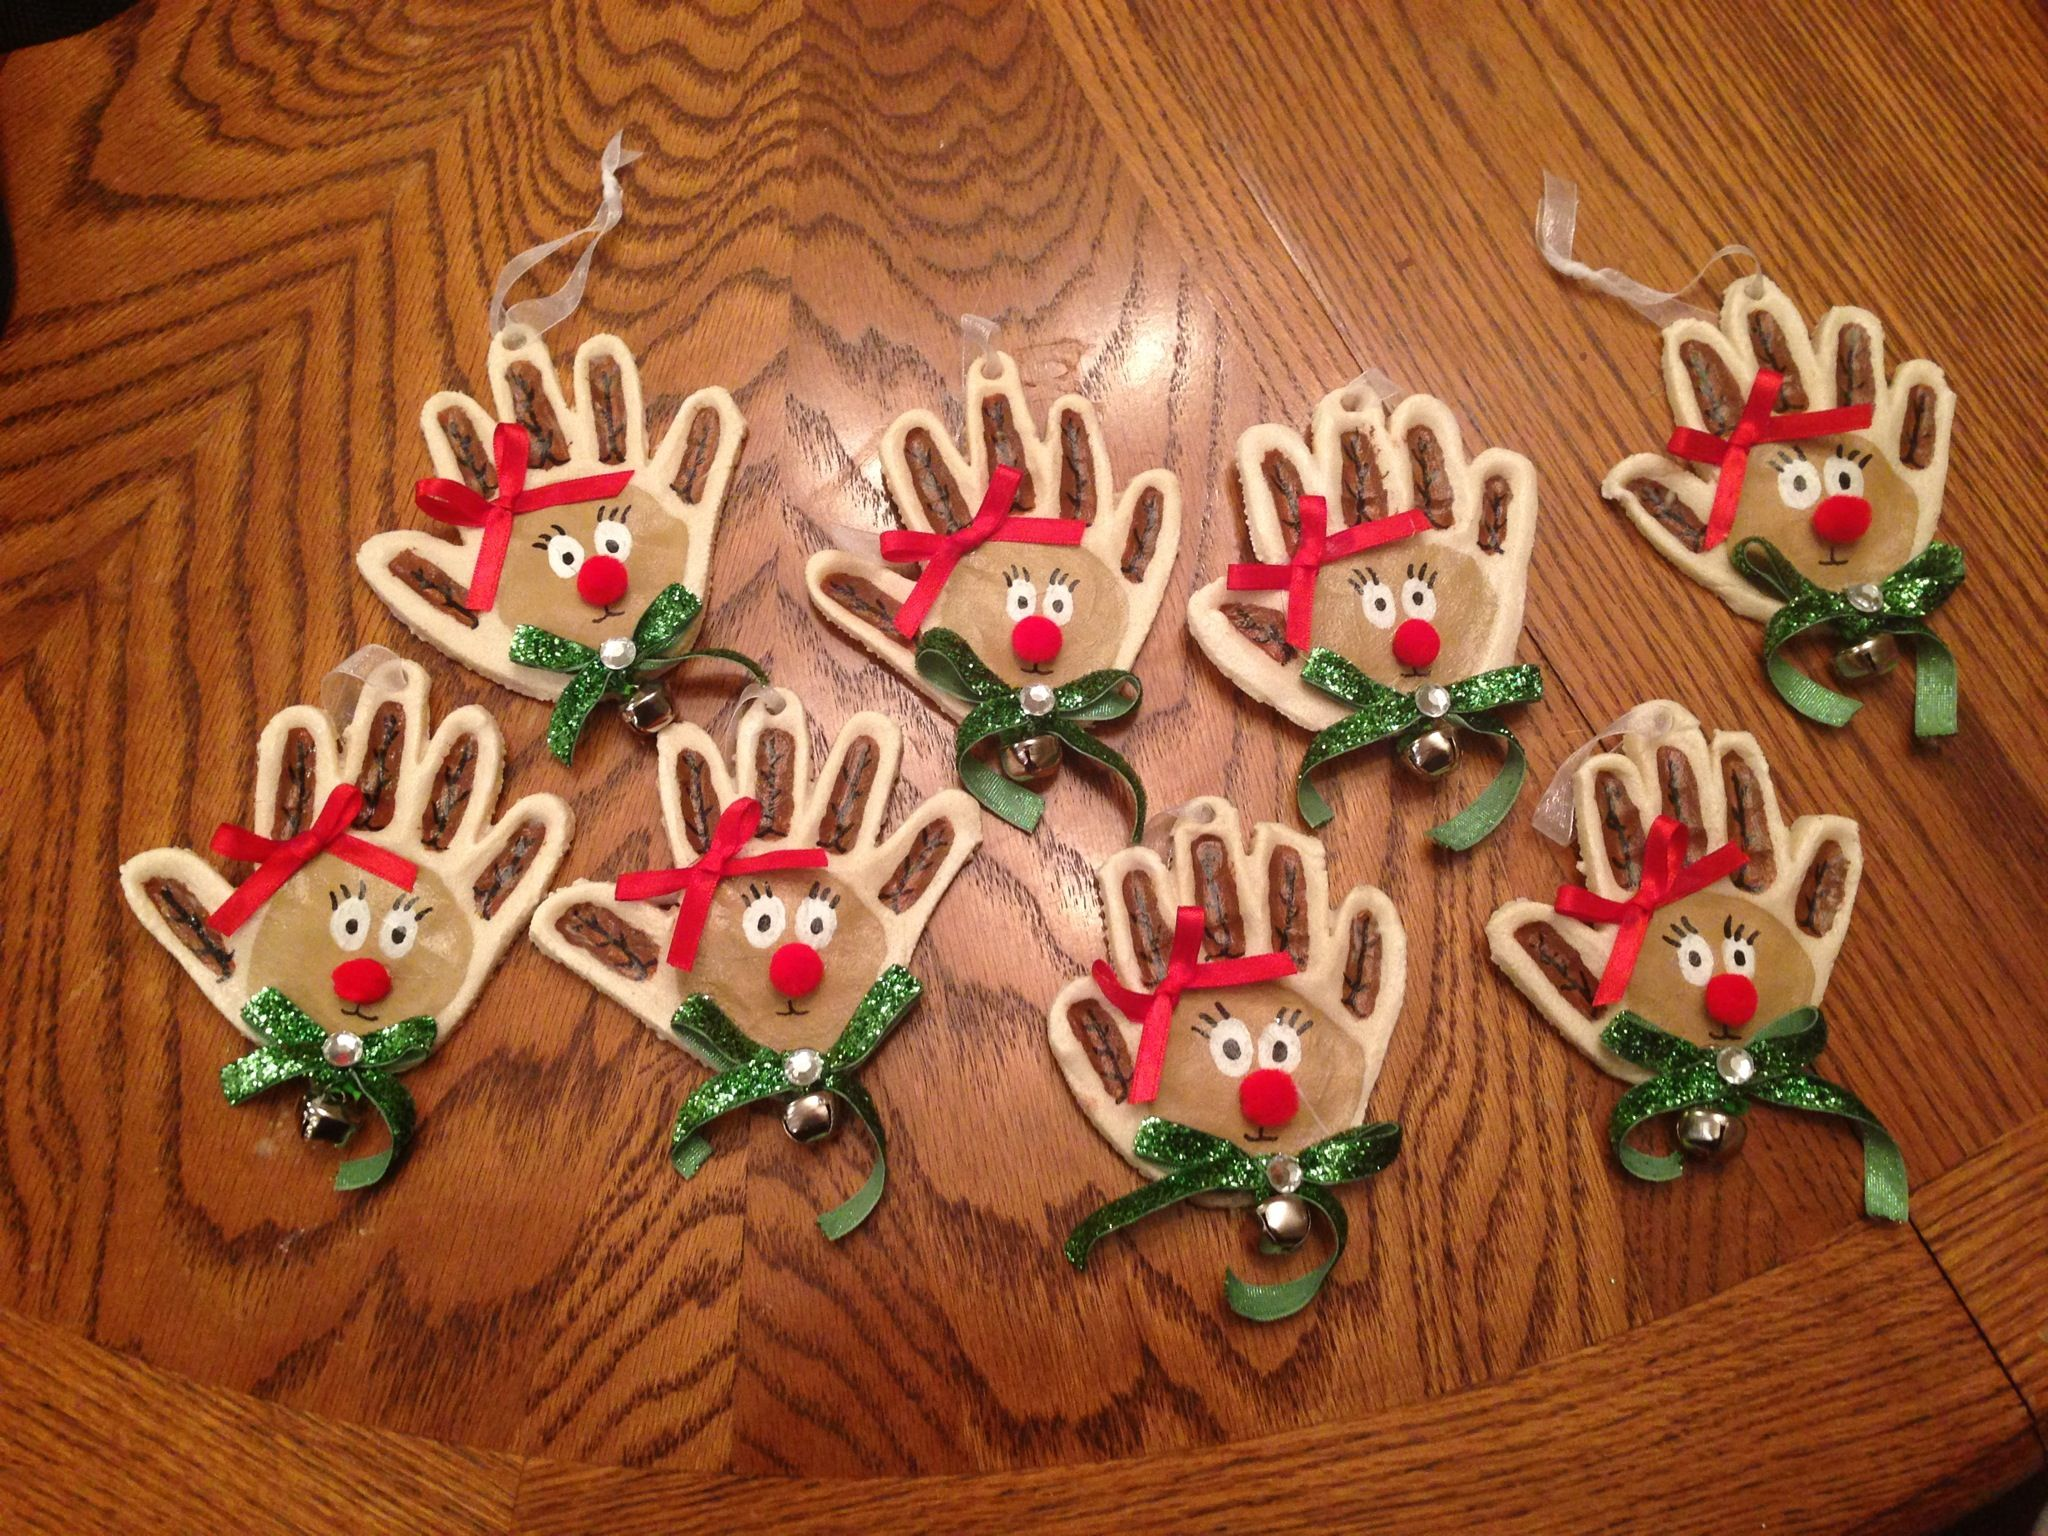 Pin By Jennifer Edwards On Sydnee S Crafts Christmas Crafts Preschool Christmas Salt Dough Christmas Decorations